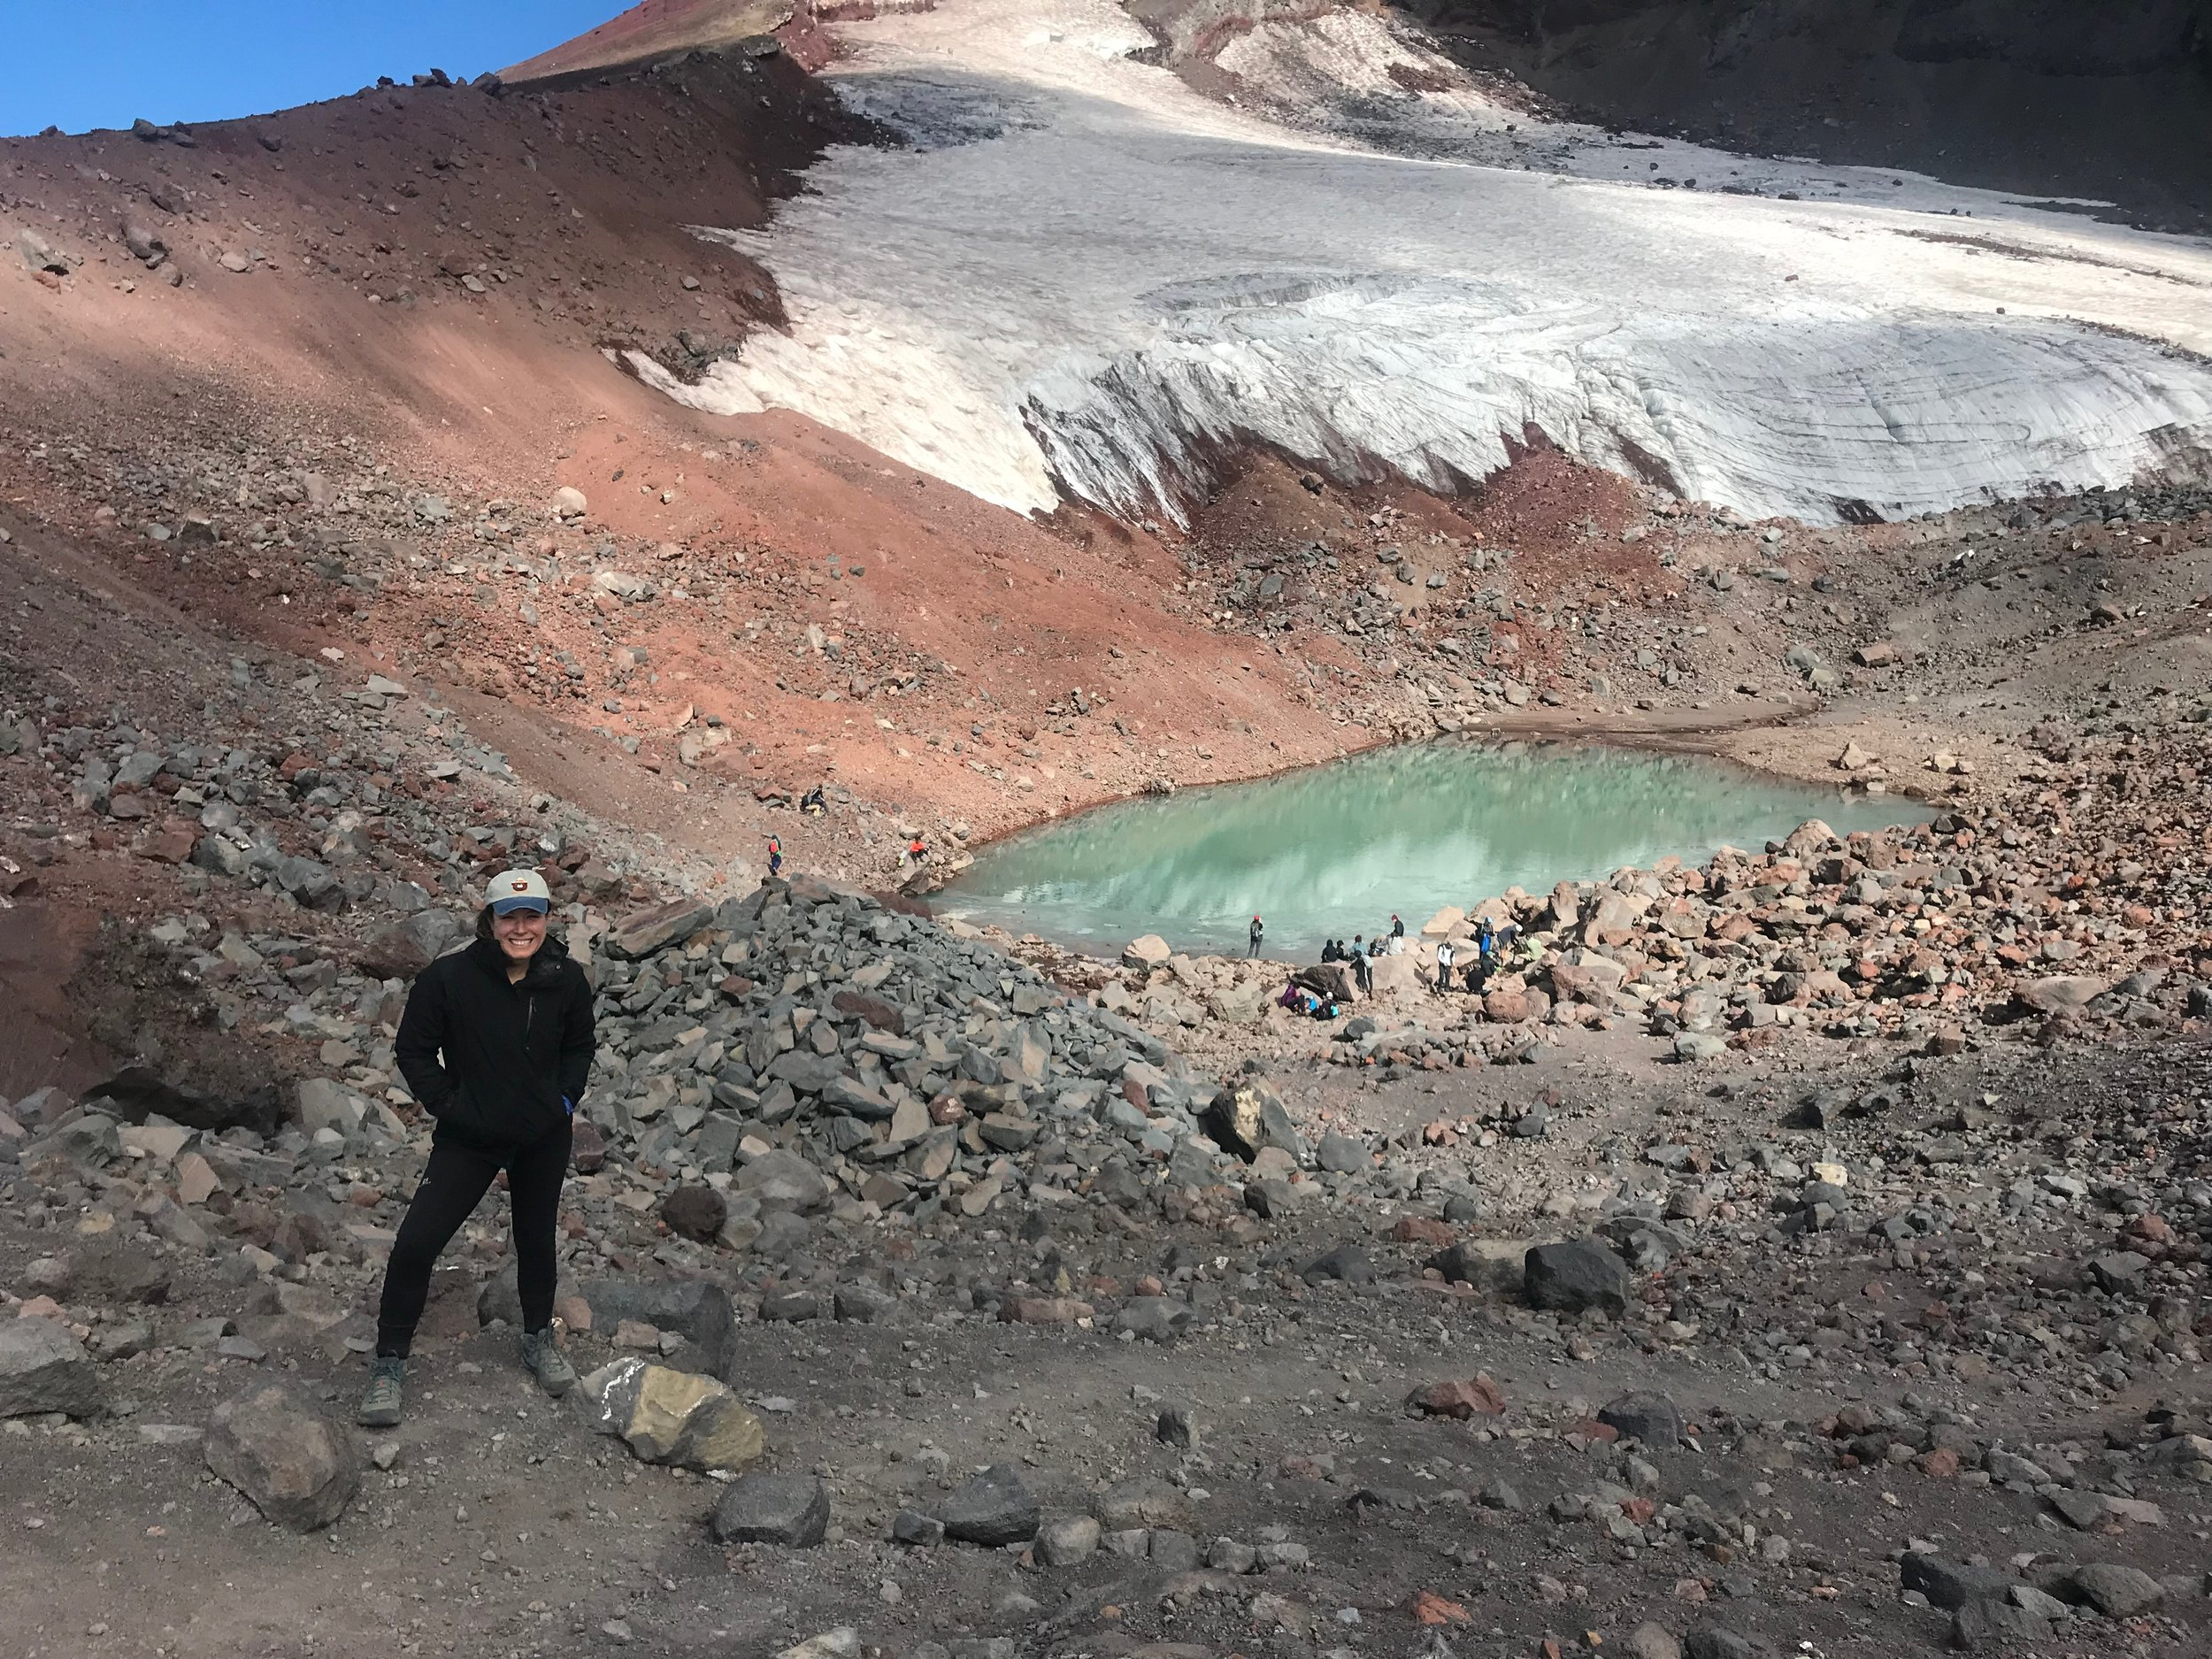 Alpine lakes were present near the summit of South Sister.